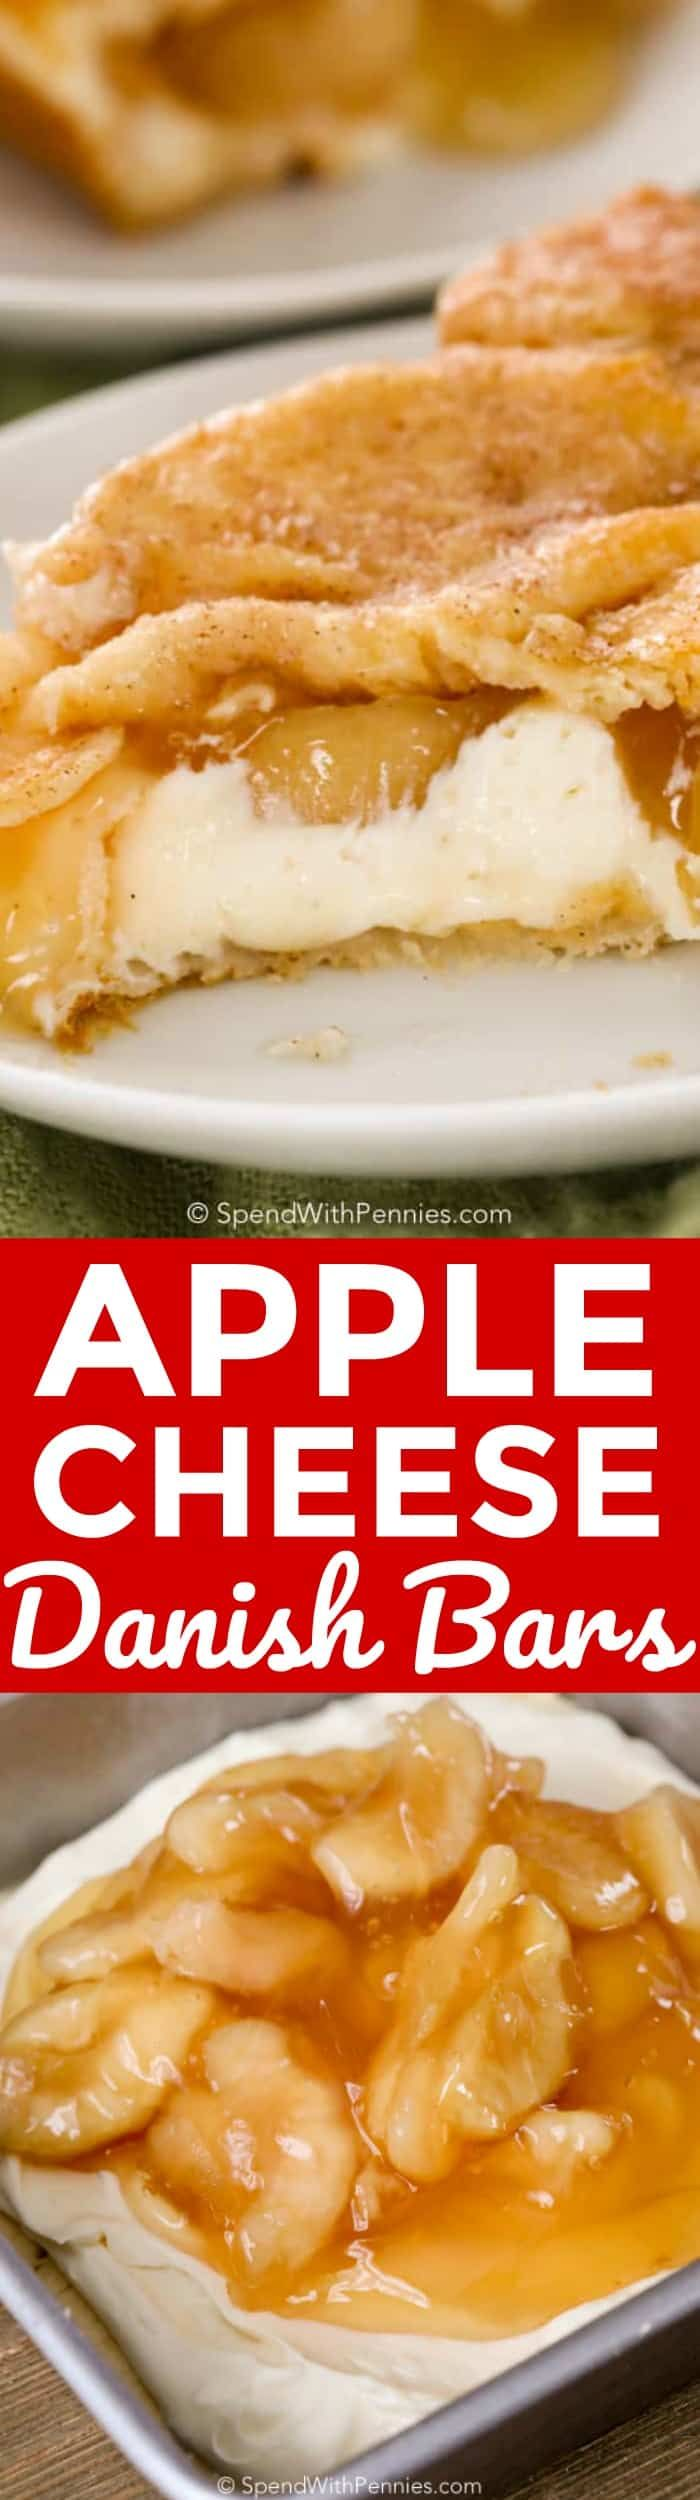 Apple Cheese Danish Bars are a quick and easy dessert that is perfect any occasion! Sweetened cream cheese and apple pie filling layered between two sheets of crescent dough create a luscious treat that your family is sure to love! #spendwithpennies #danish #creamcheese #crescent #easyrecipe #dessert #treat #quickrecipe #bars